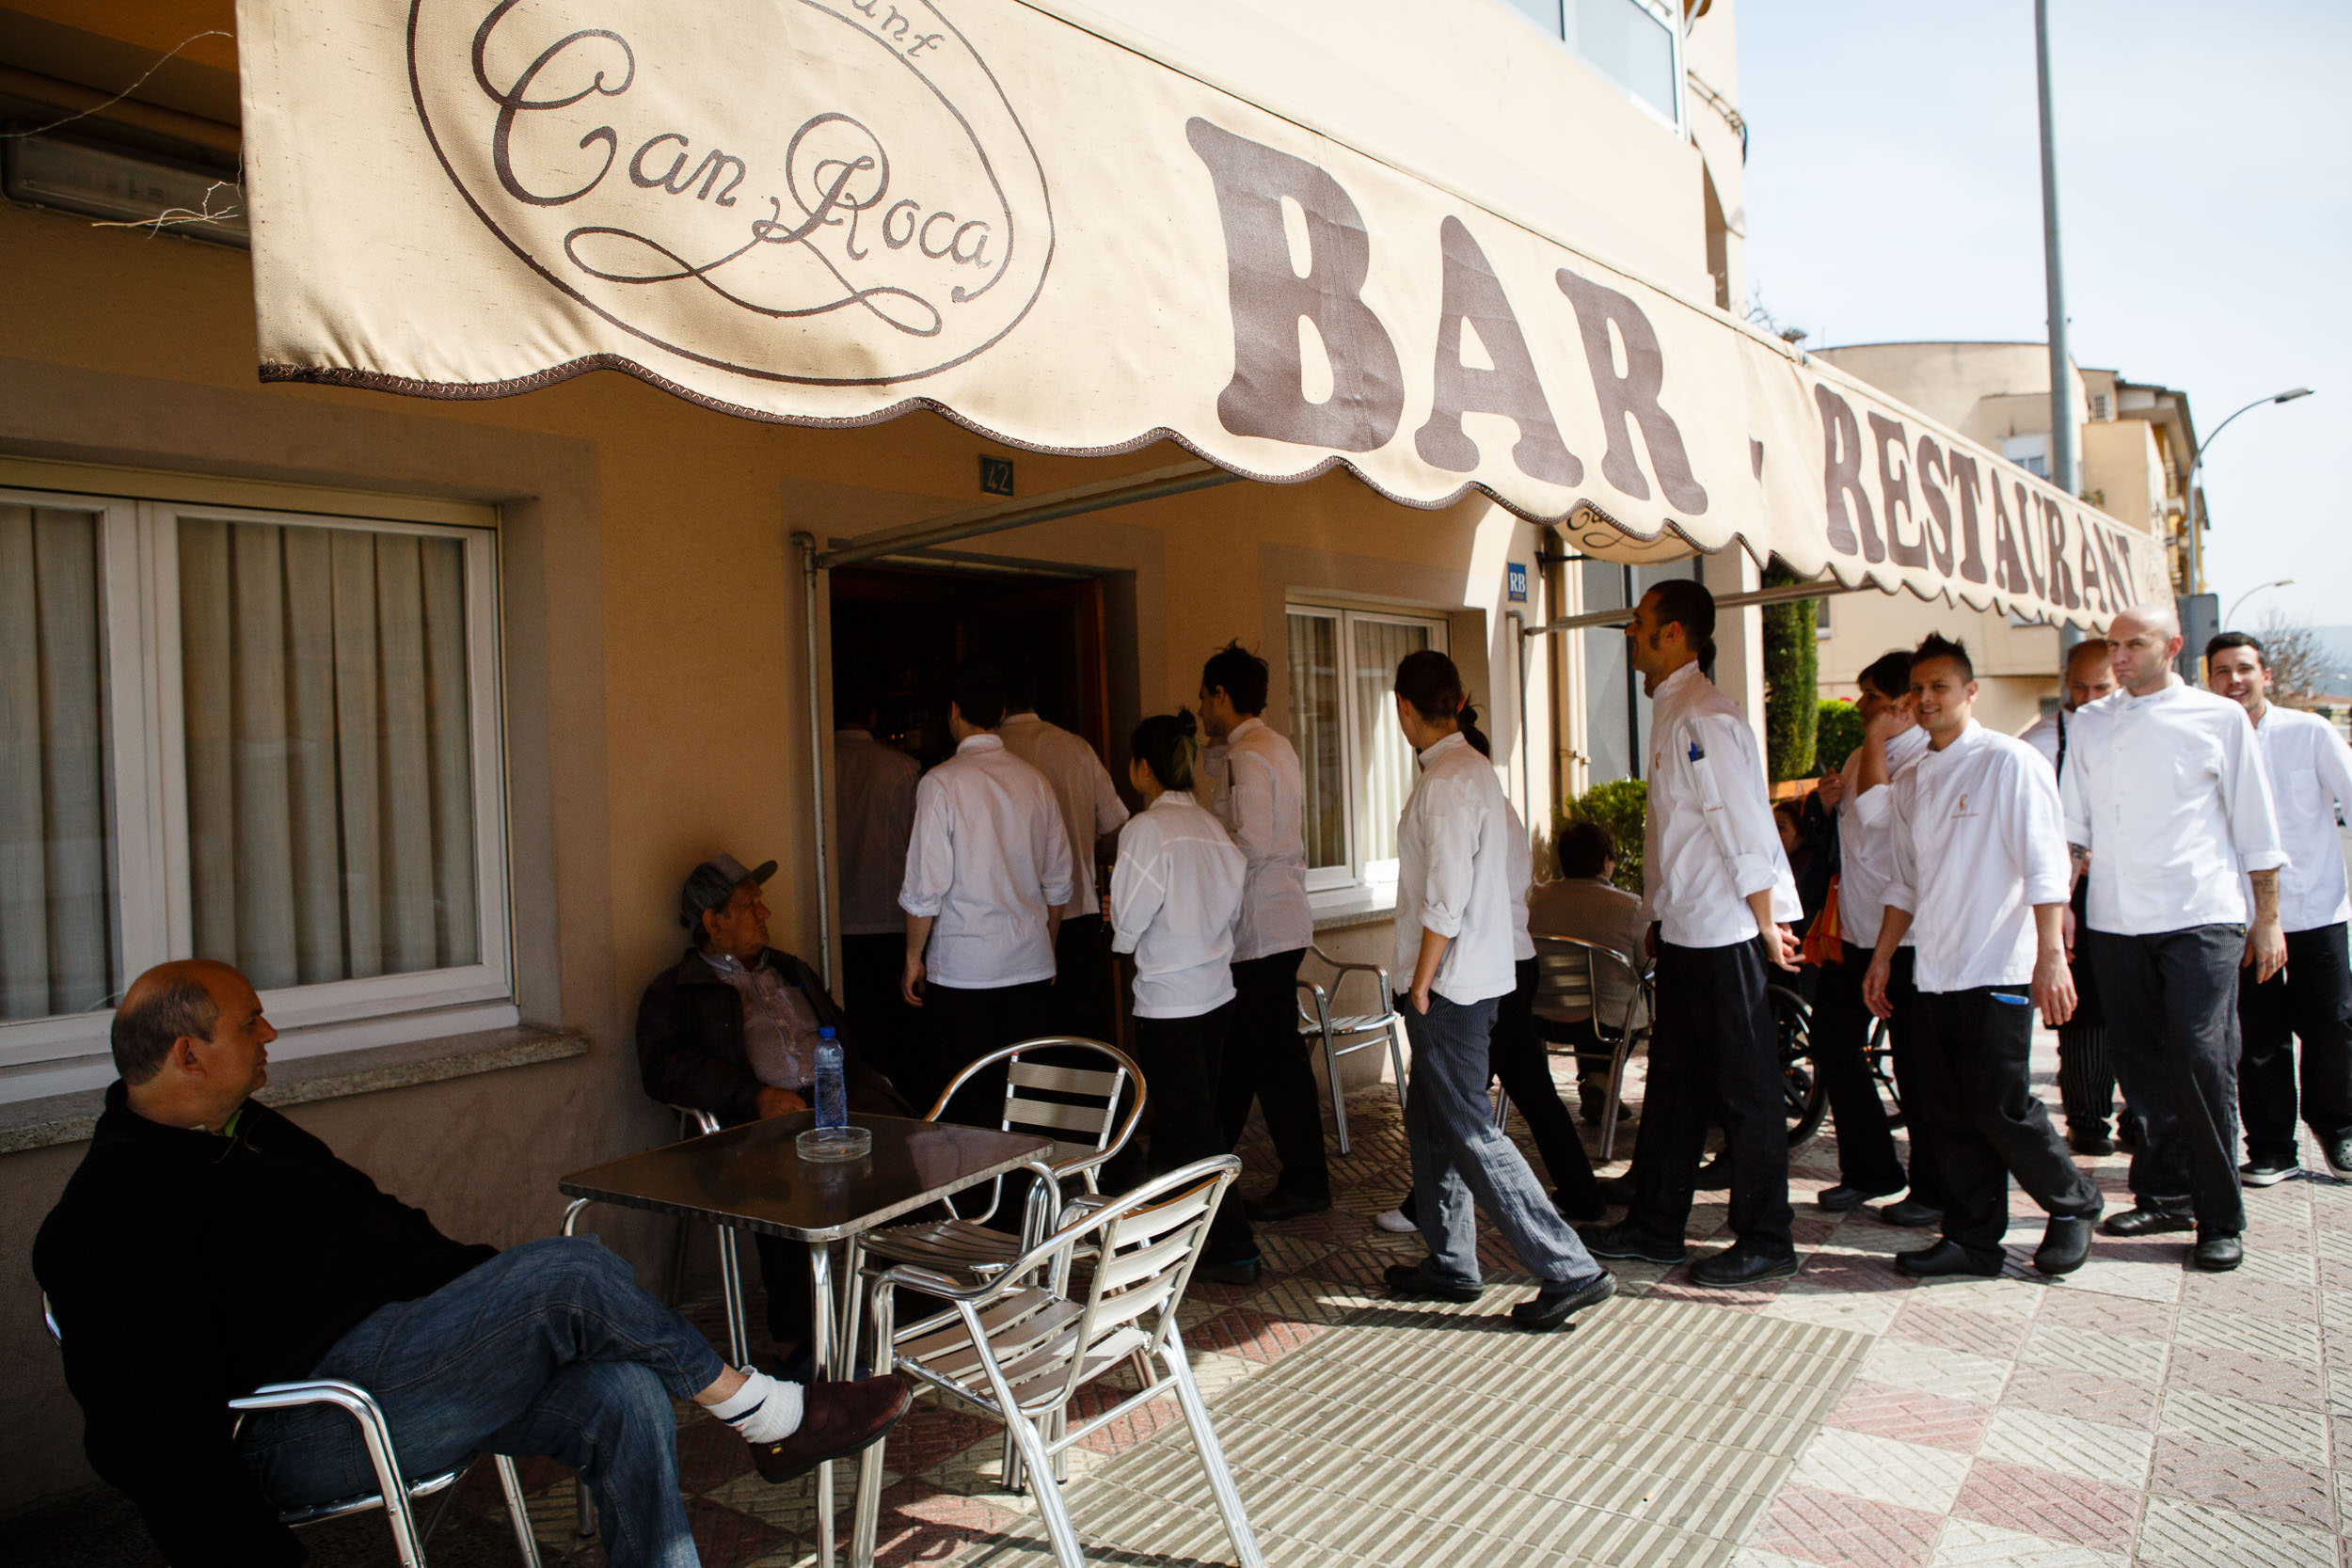 14/3/14 Brothers Joan (white coat) and Josep (blue jacket) lead El Cellar de Can Roca staff to their parents' restaurant for lunch, Girona, Spain. Photo by James Sturcke | www.sturcke.org